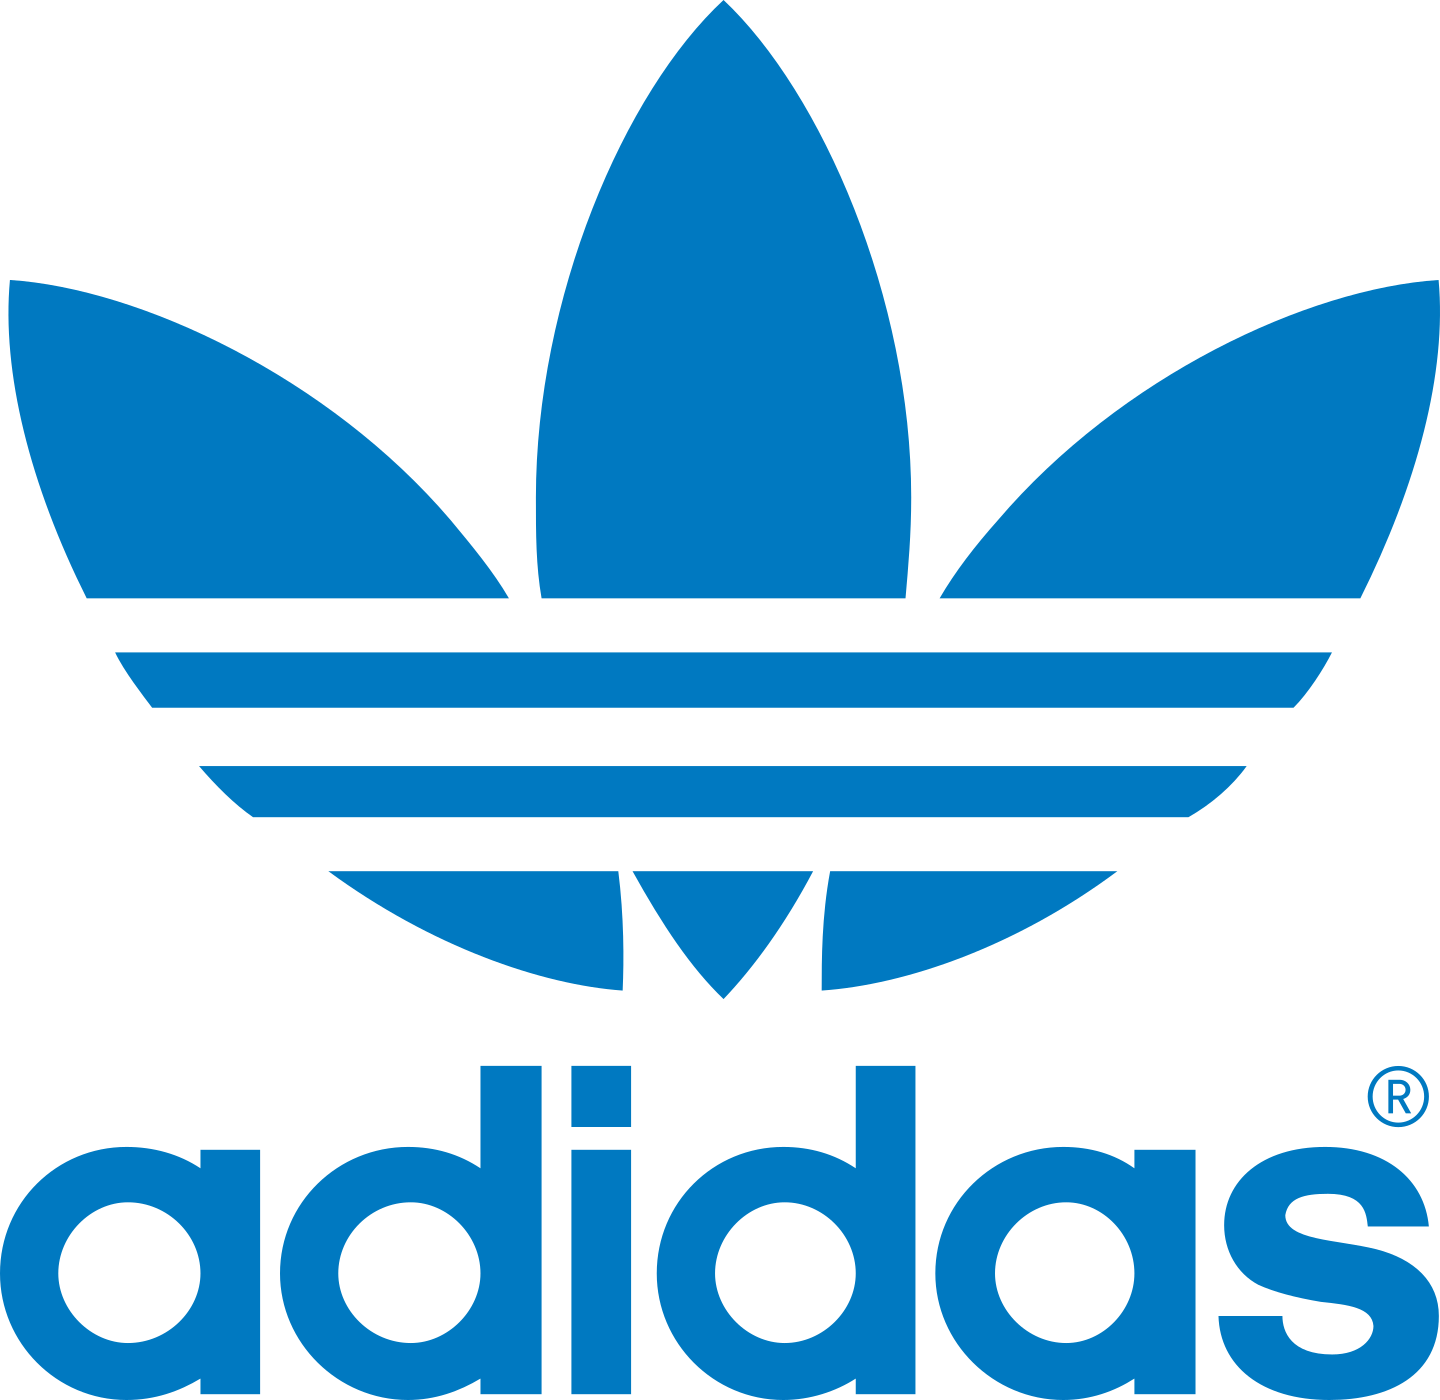 adidas originals logo 2 - Adidas Originals Logo